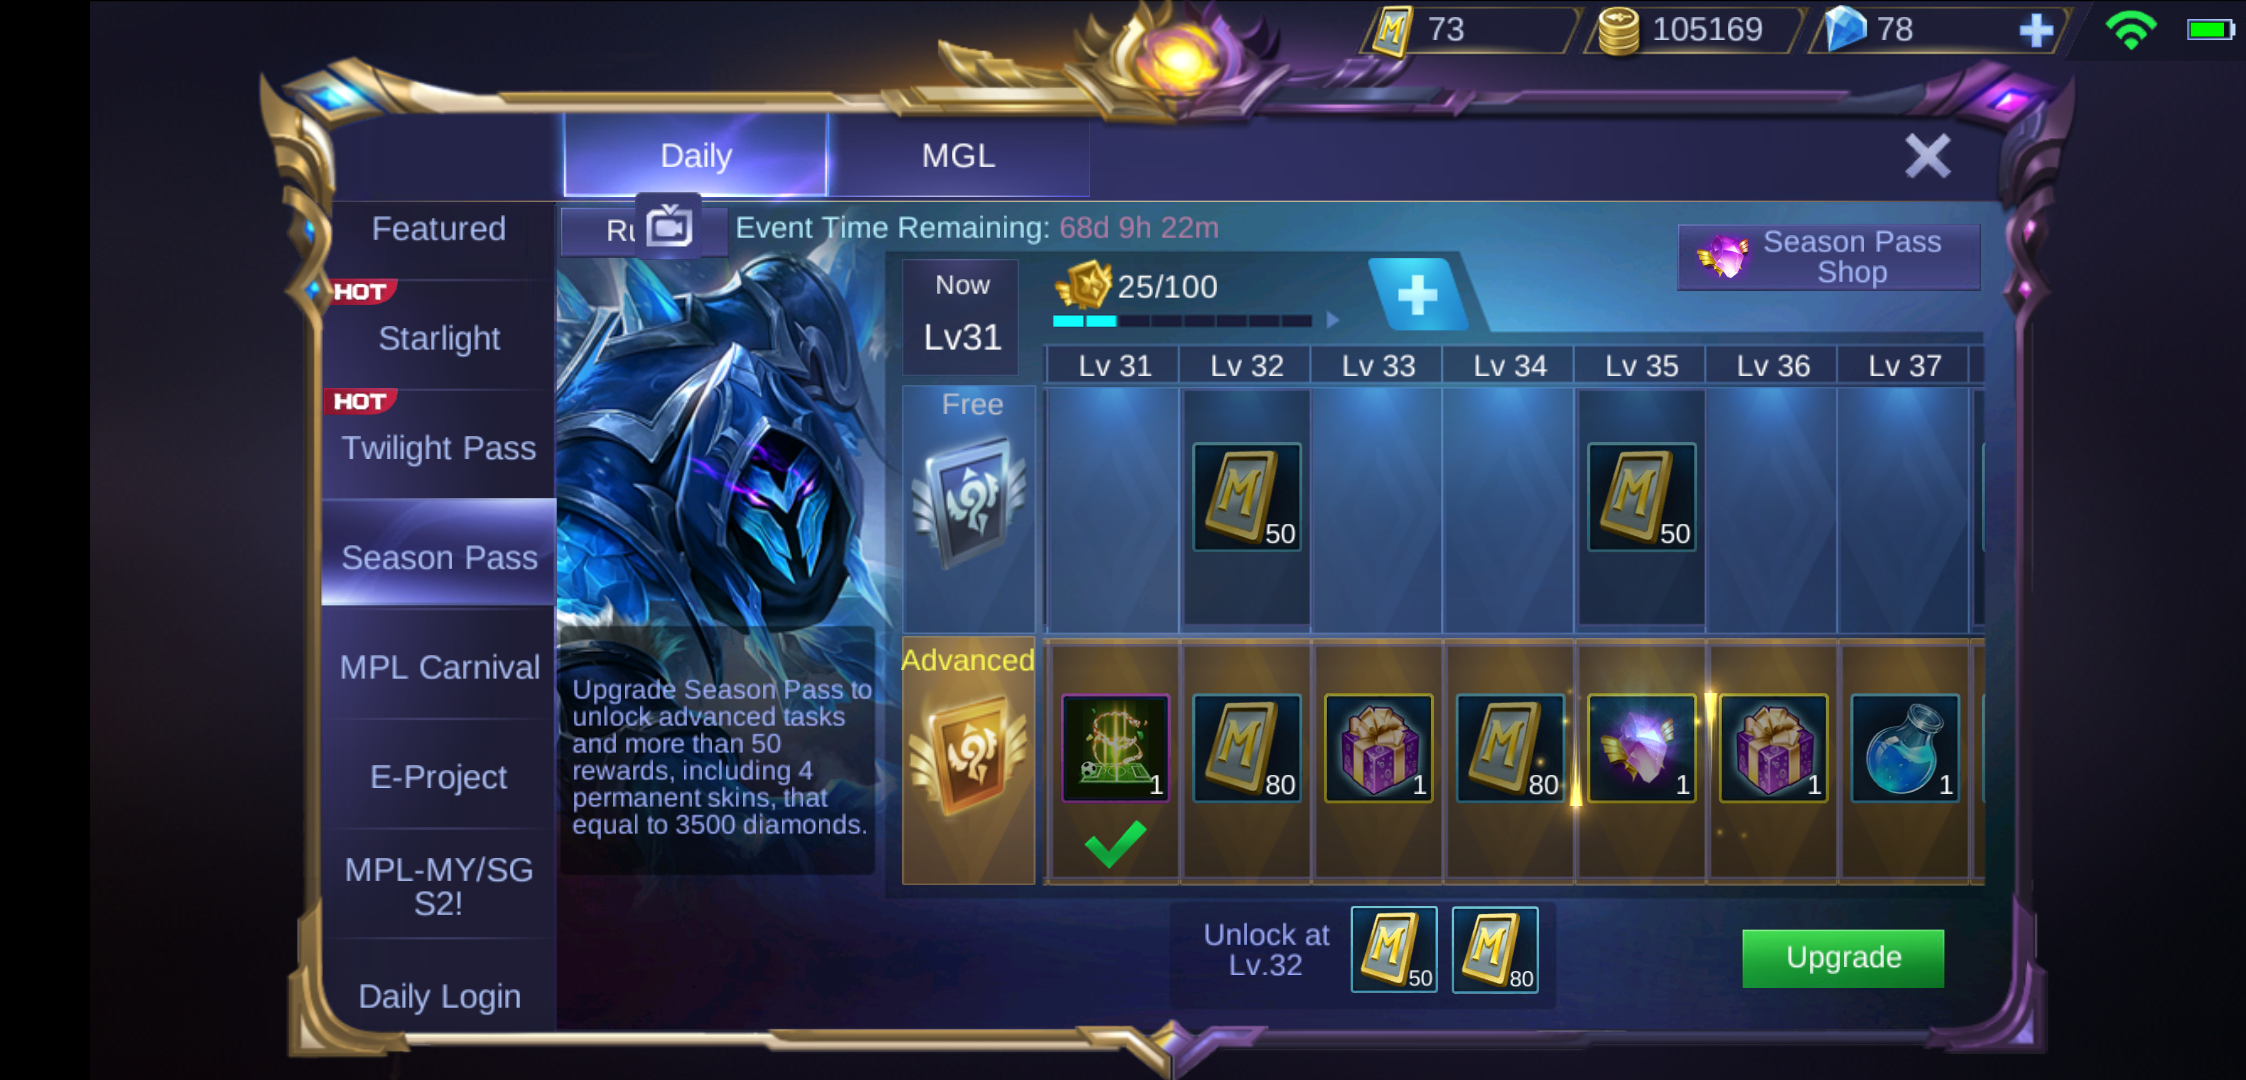 Screenshot_2018-10-11-04-38-06-013_com.mobile.legends.png